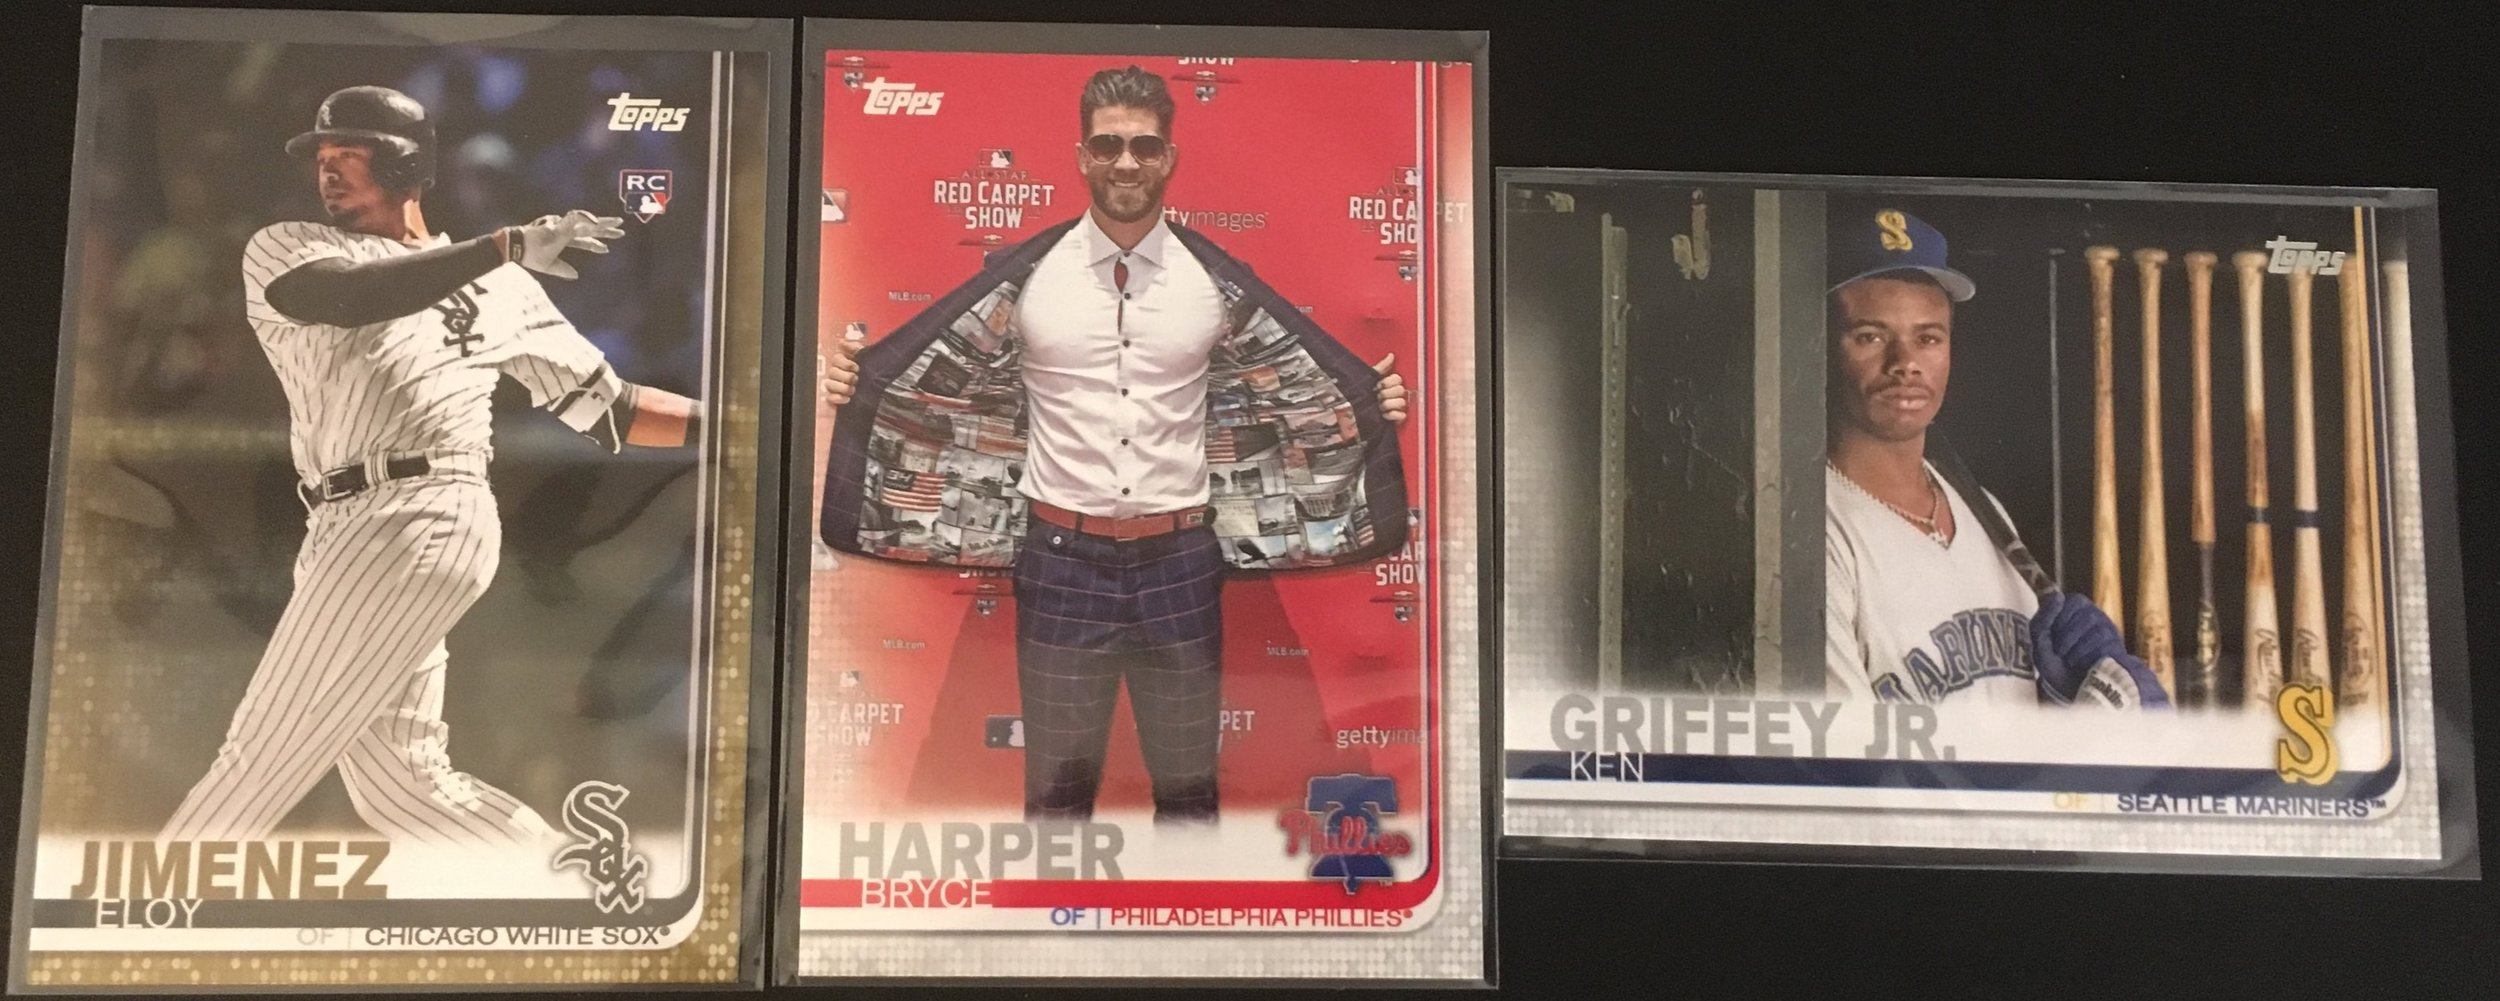 An Eloy Gold parallel, Bryce Harper SP, and a Ken Griffey Jr. SP were pulled from my boxes!